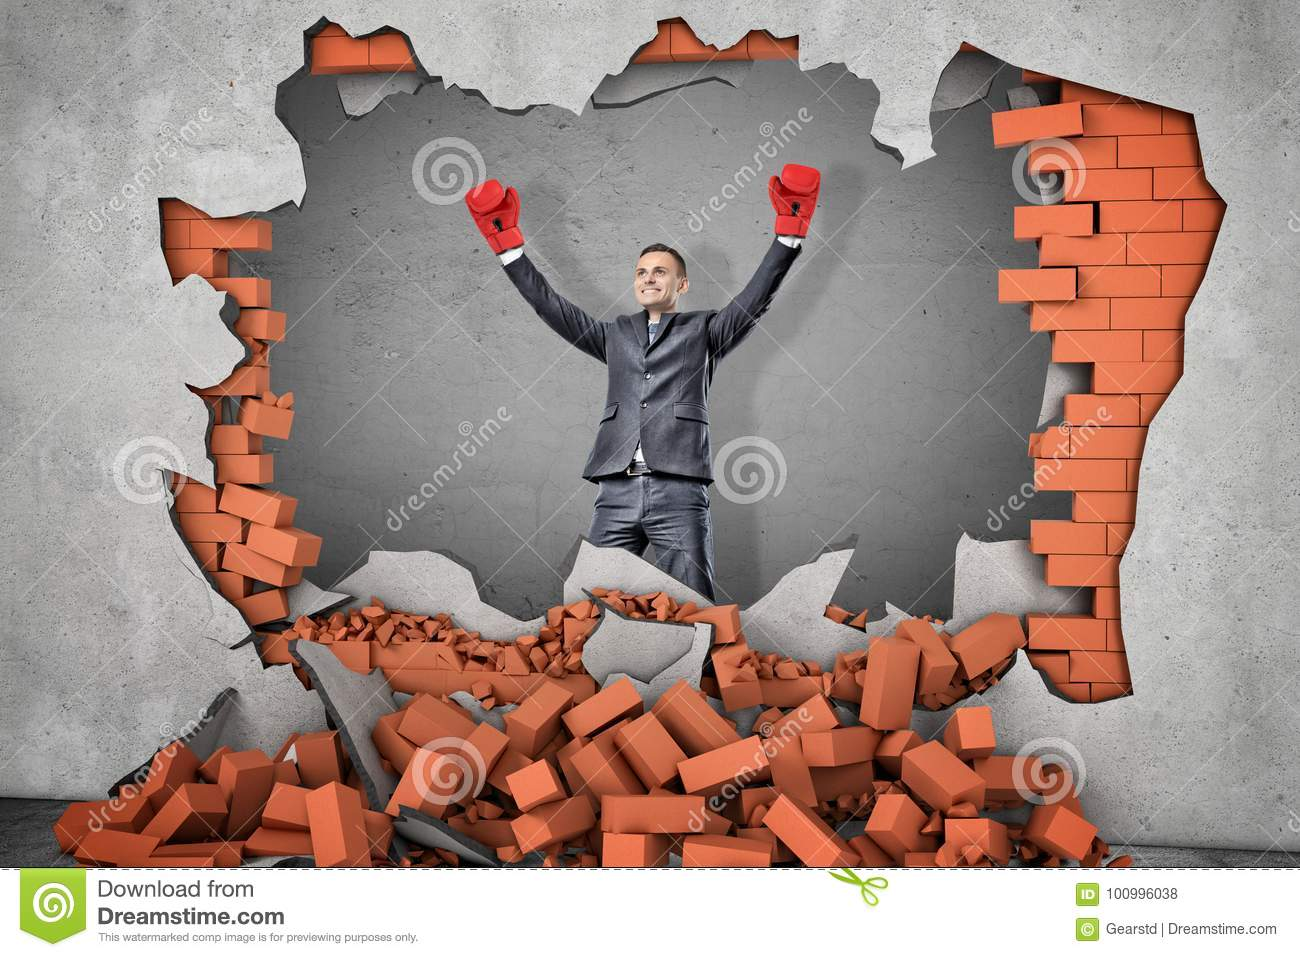 A victorious businessman in boxing gloves stands near a hole in a brick wall with rubble lying around.